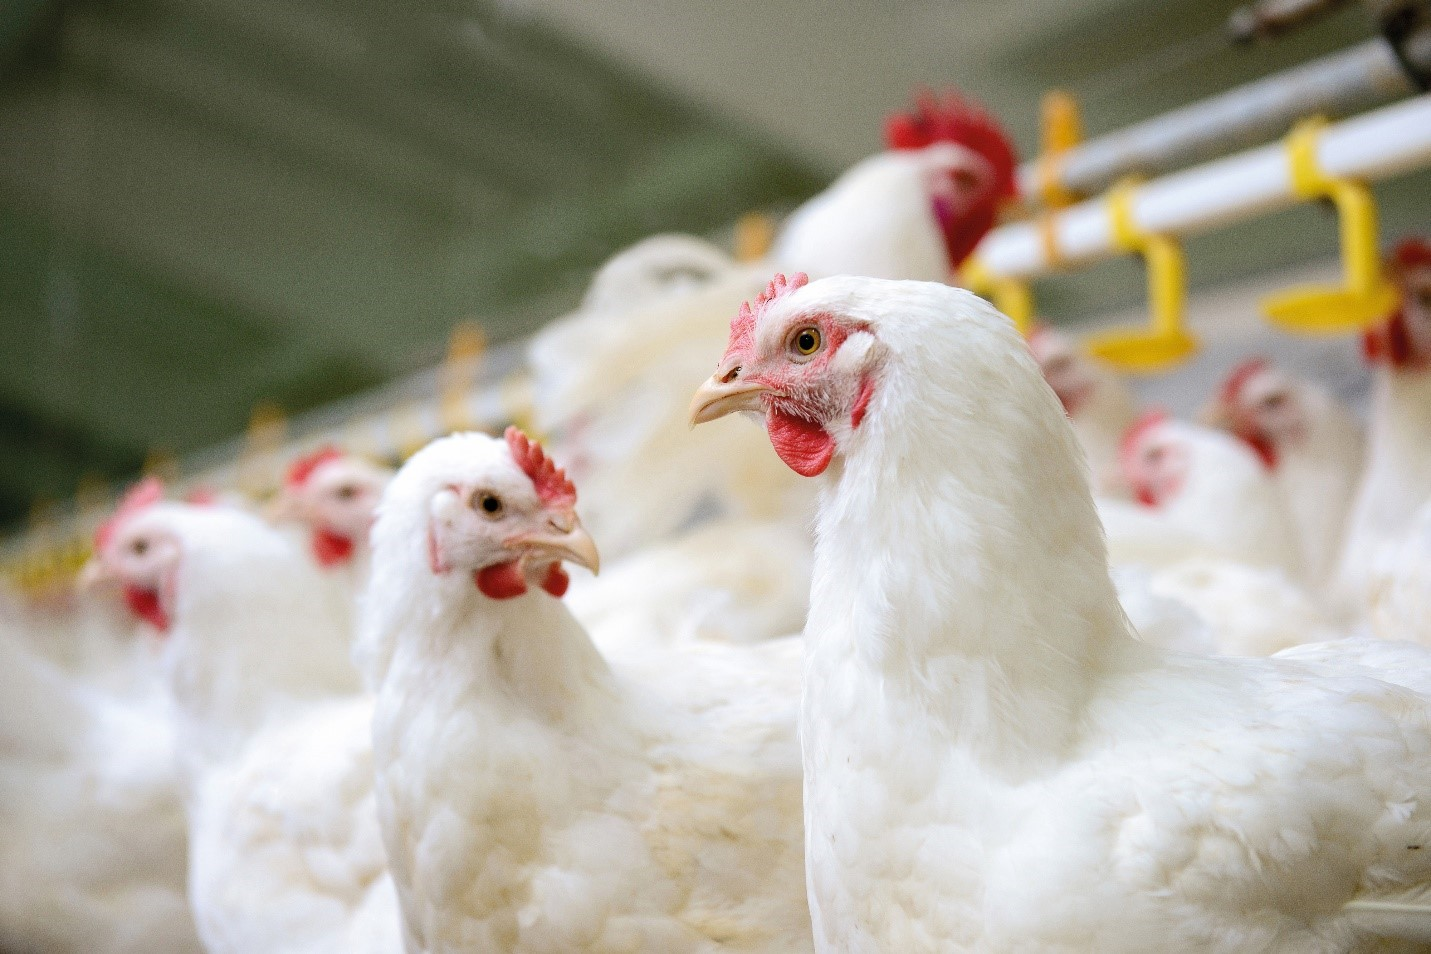 Mold growth reduces the nutritional value of feed, which affects animal health and performance